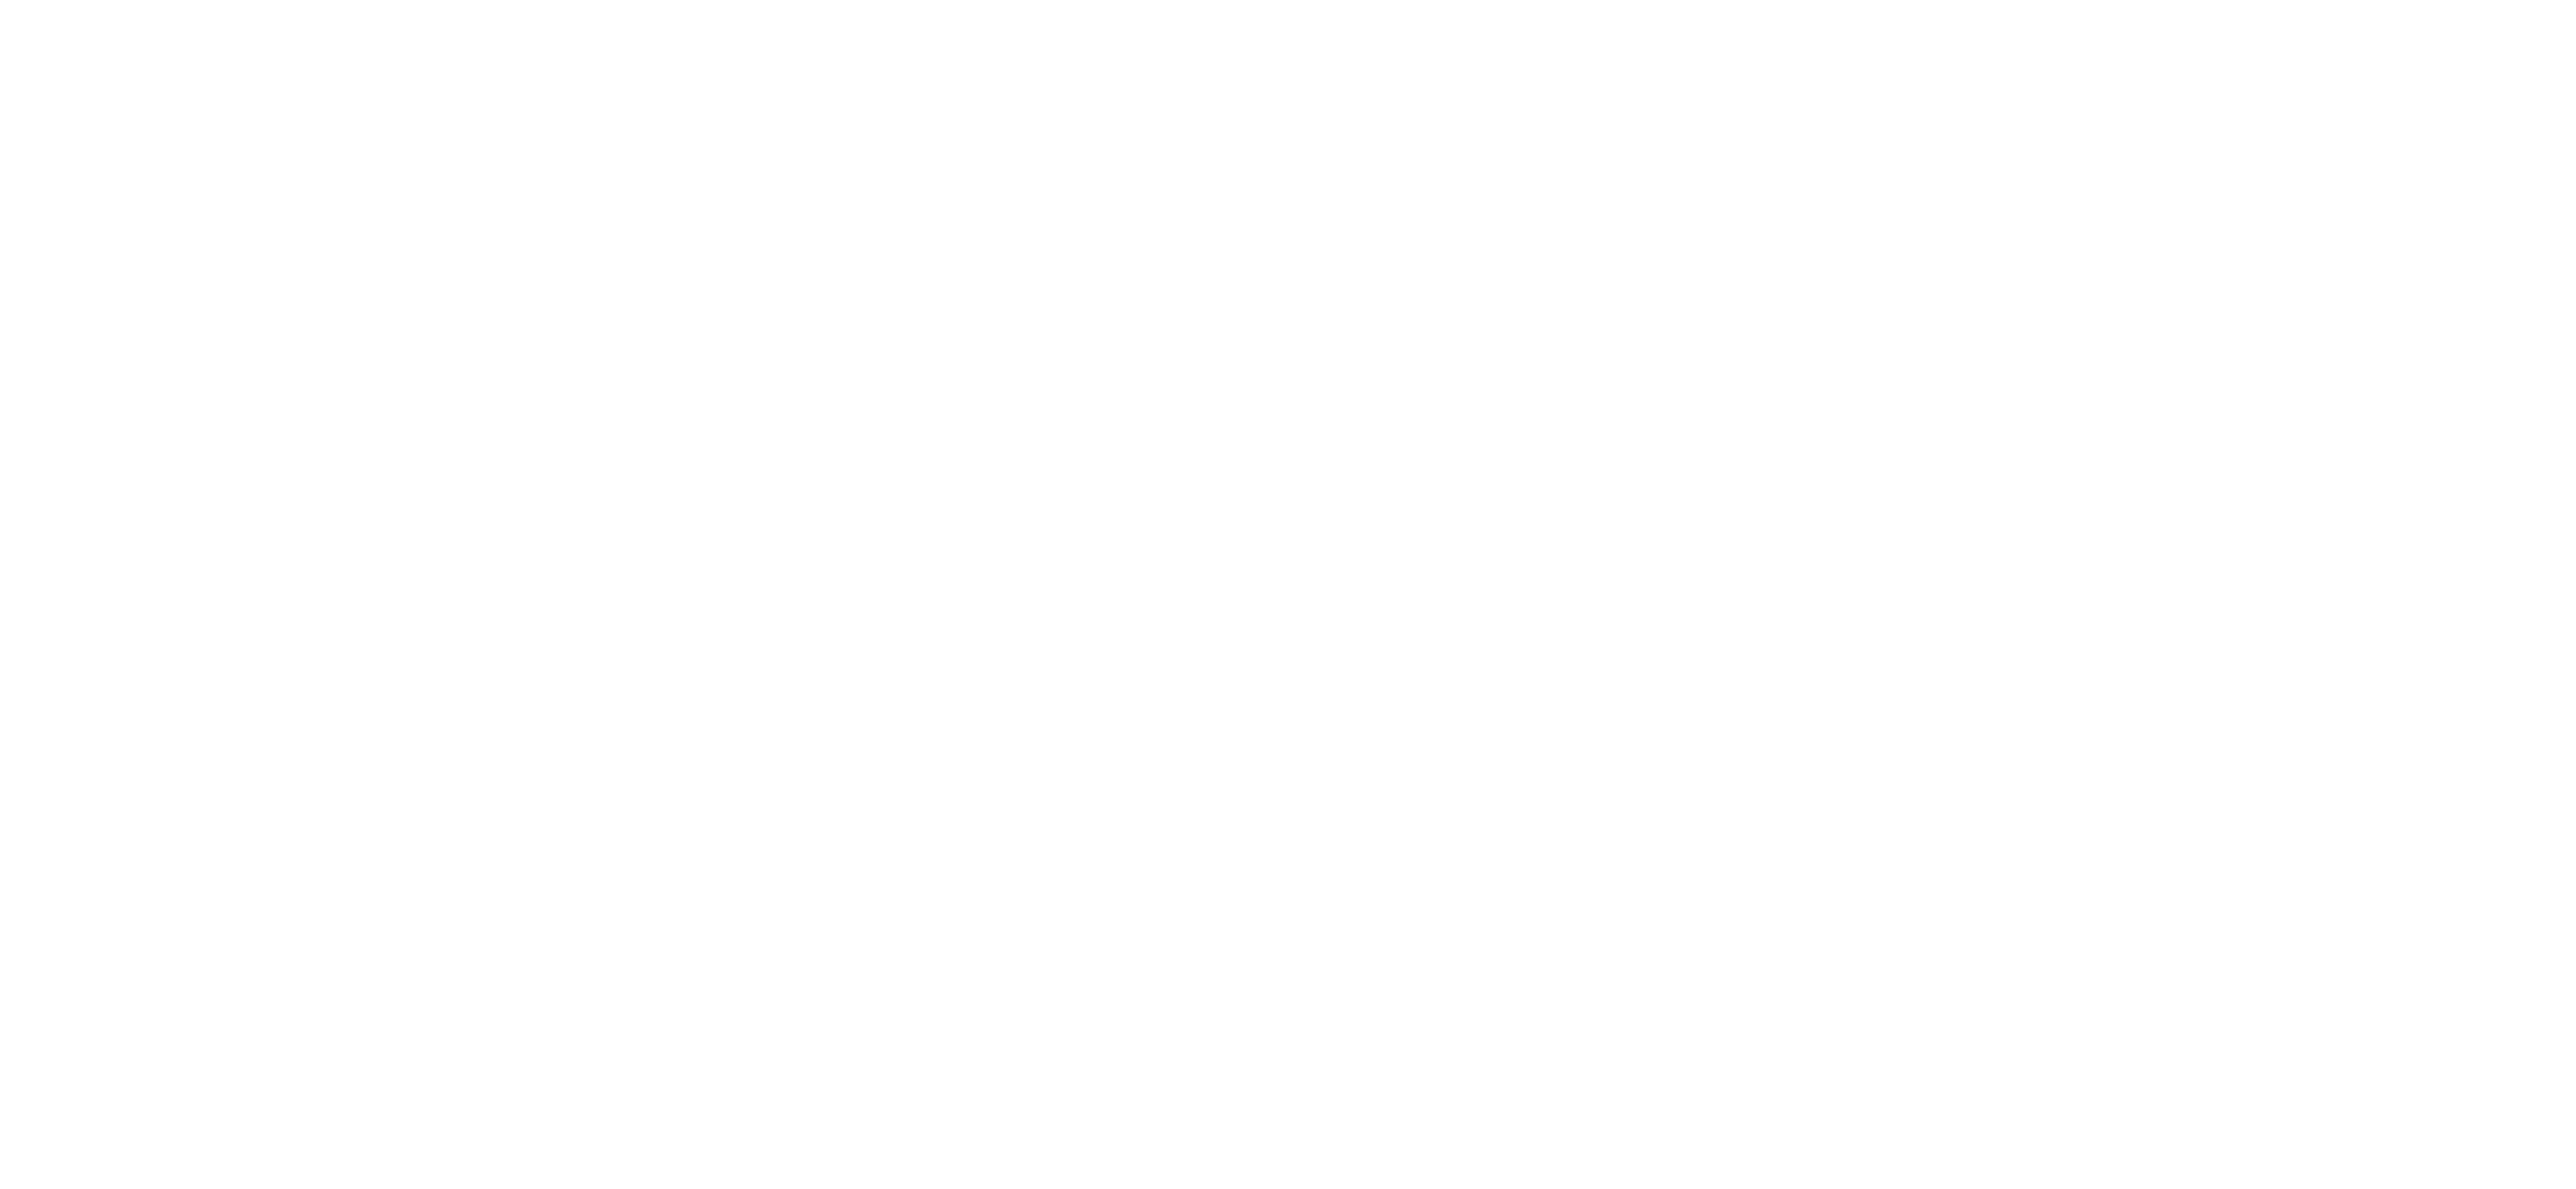 Fulcrum Real Estate Services